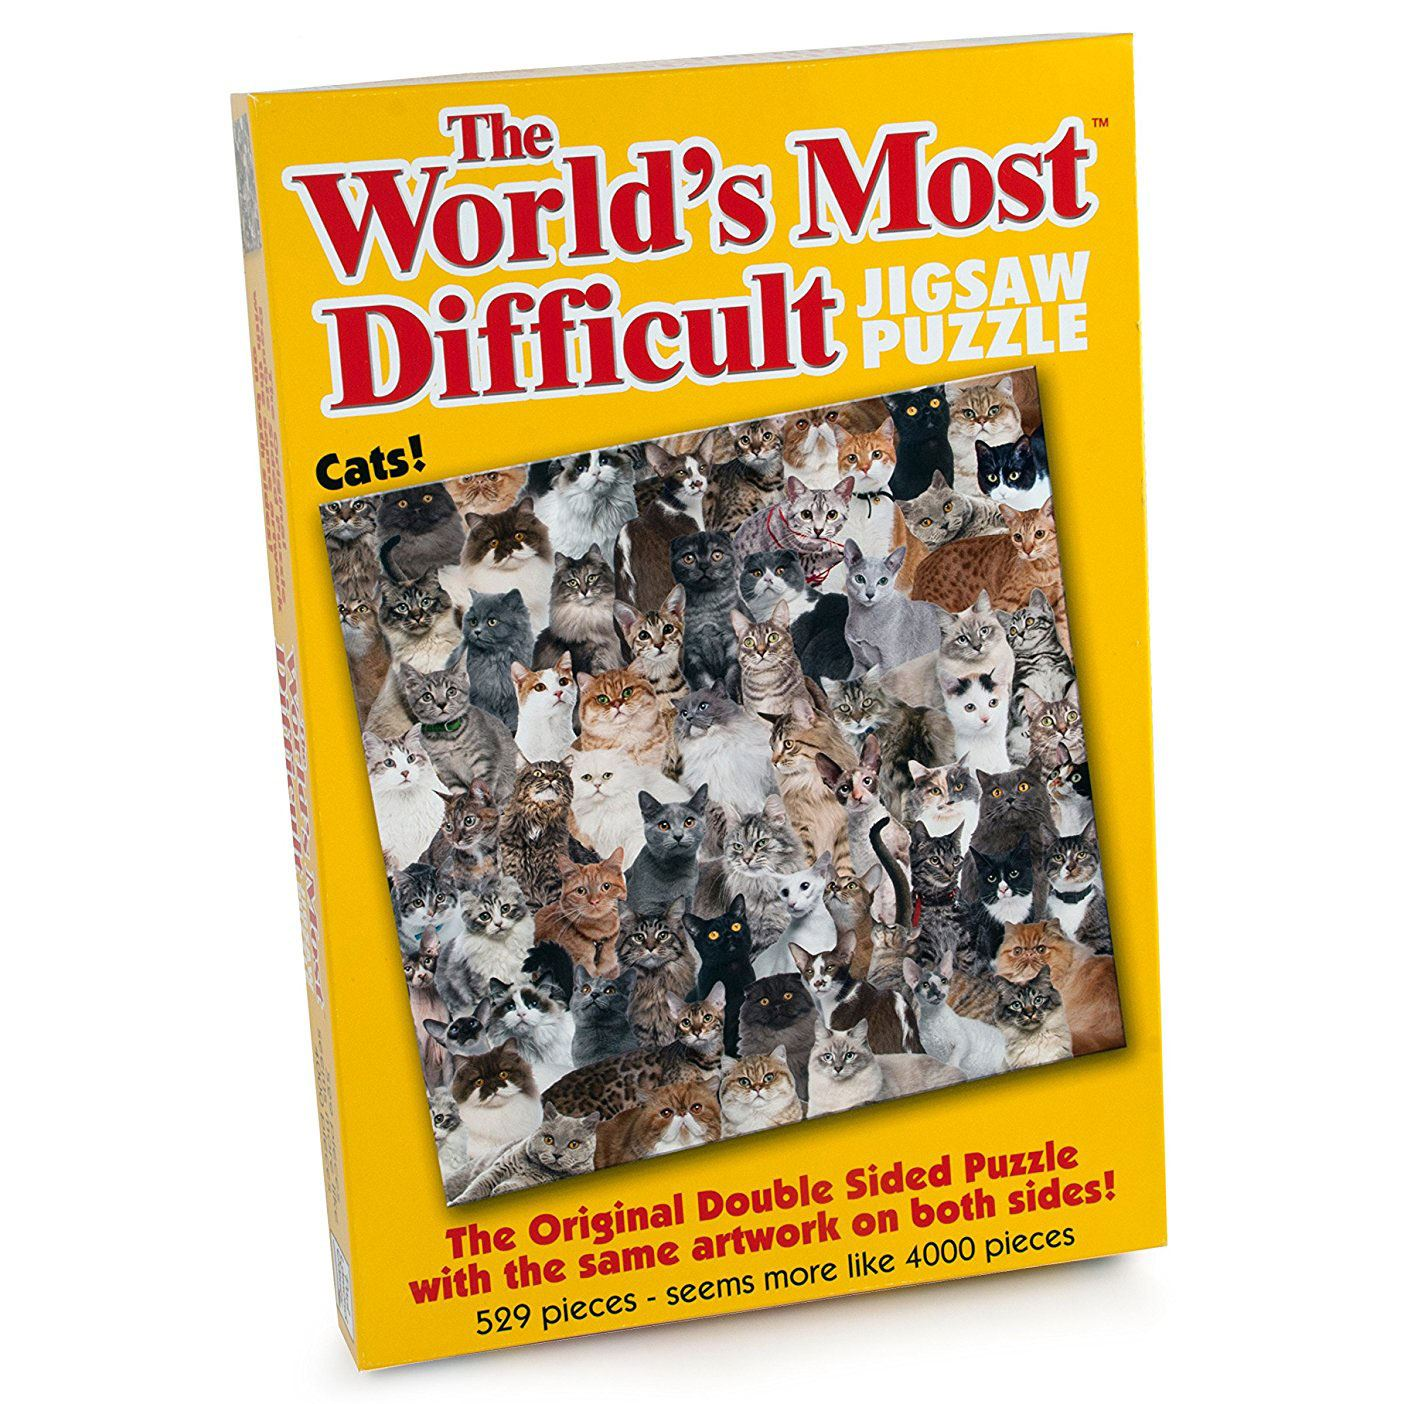 World's Most Difficult Jigsaw Puzzle - Cats (529 Pieces)